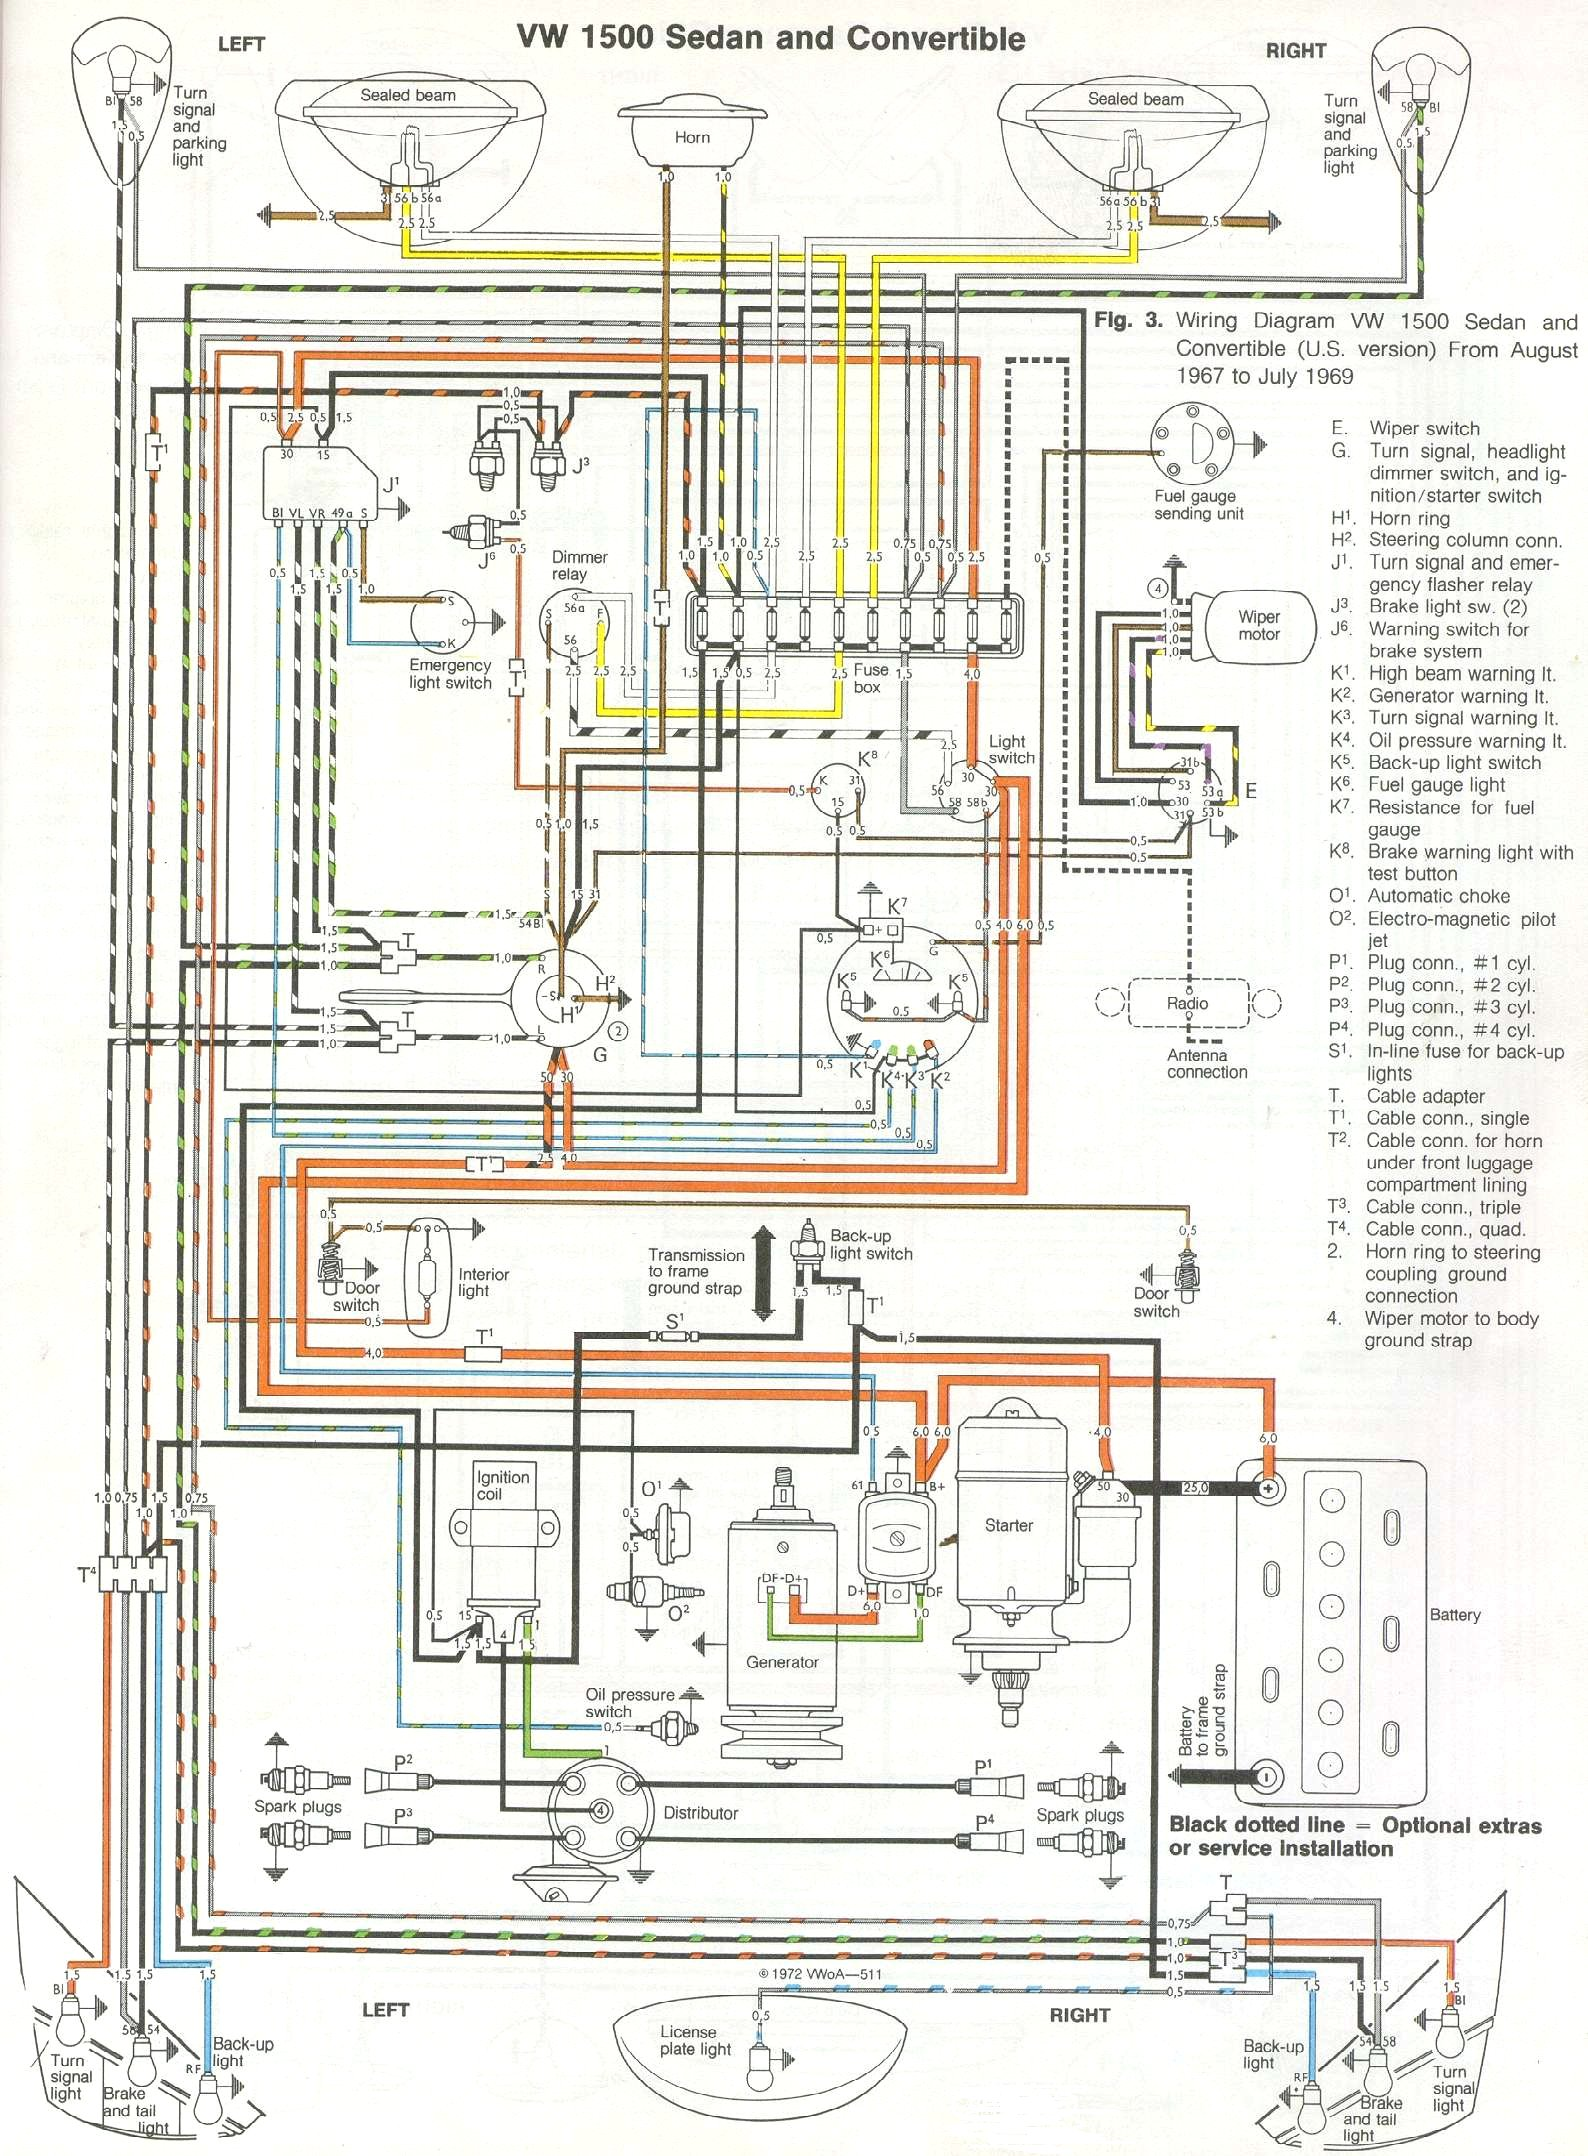 bug_6869 vw wiring harness diagram cj7 wiring harness diagram \u2022 wiring 1971 vw bus wiring diagram at cos-gaming.co